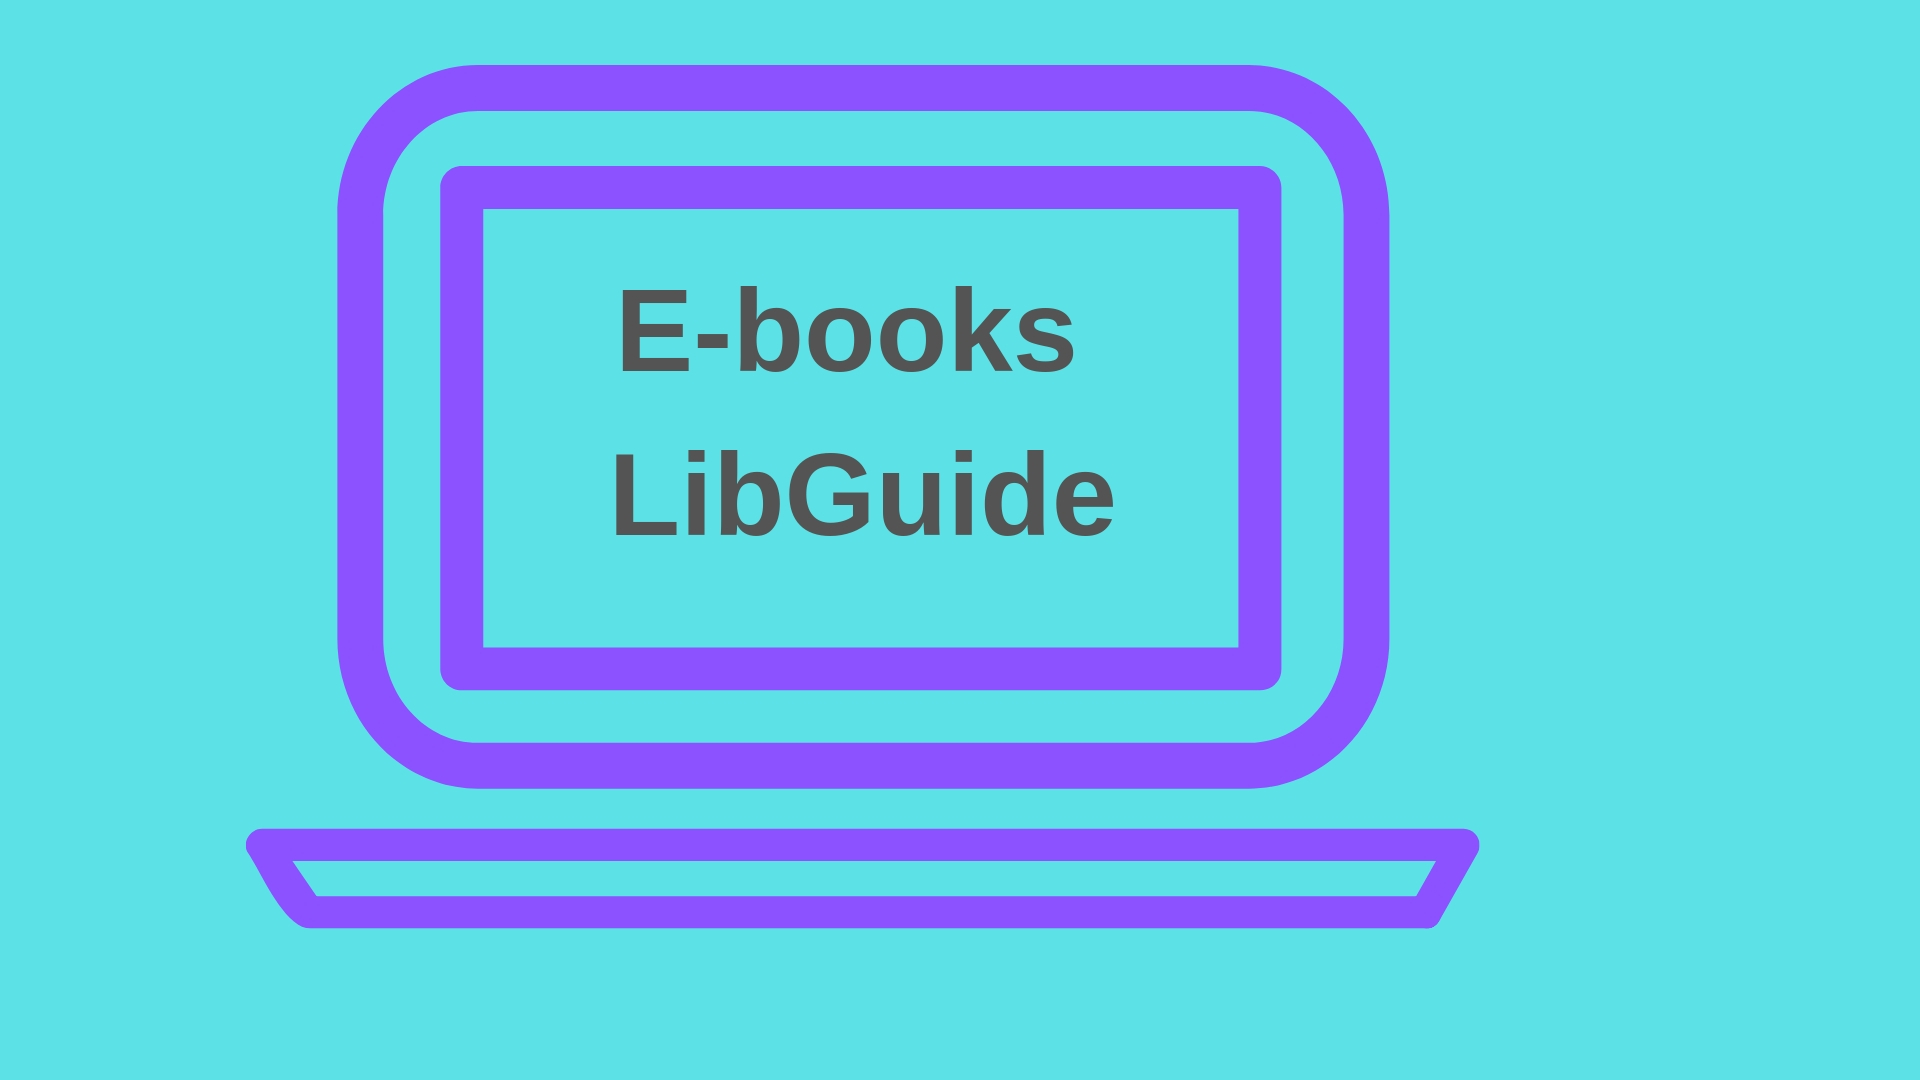 E-books Libguide